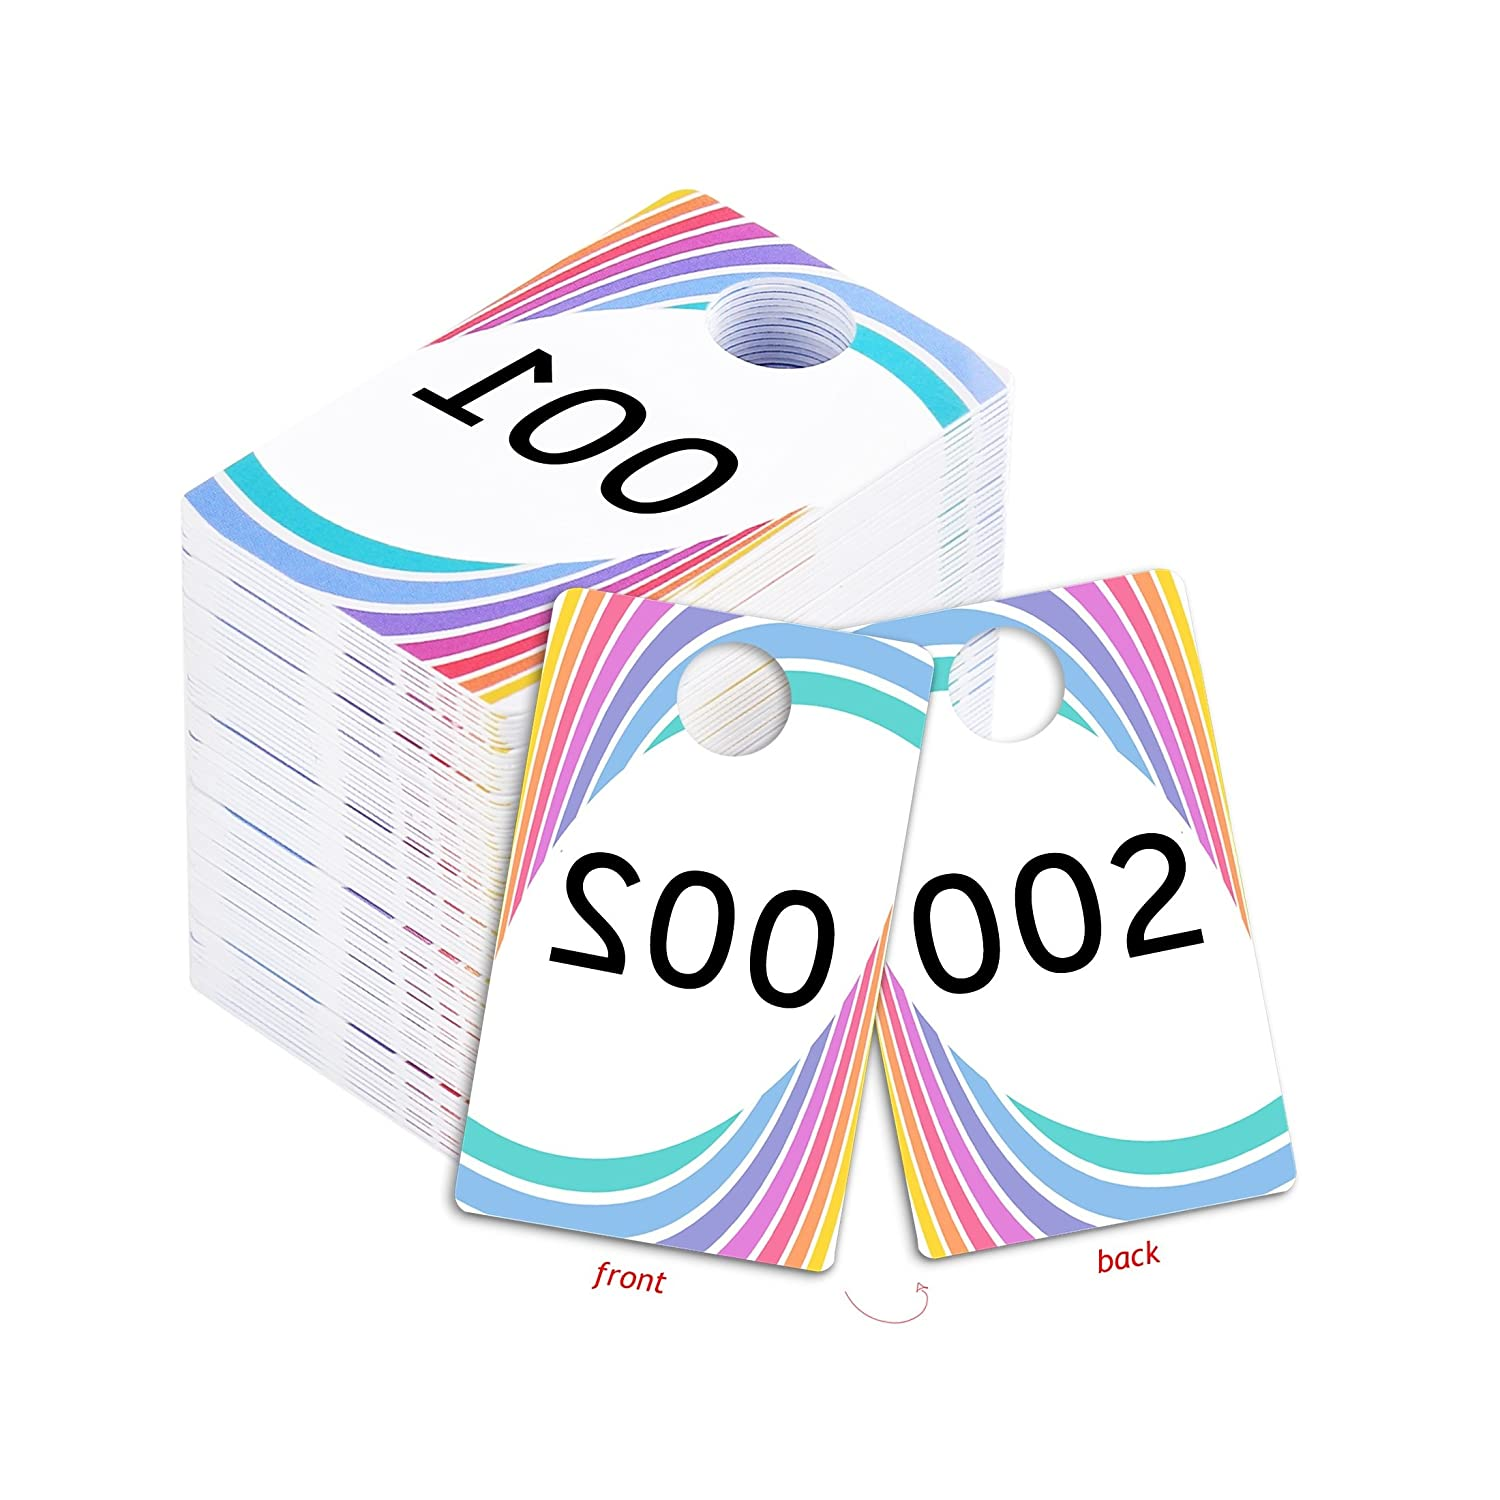 photograph regarding Paparazzi Printable Numbers named Stay Sale Plastic Tags, 001-999 Quantity Collection, Reusable All-natural and Opposite Replicate Graphic Hanger Playing cards, Opt for a Preset of 100 Quantities, (001-100)